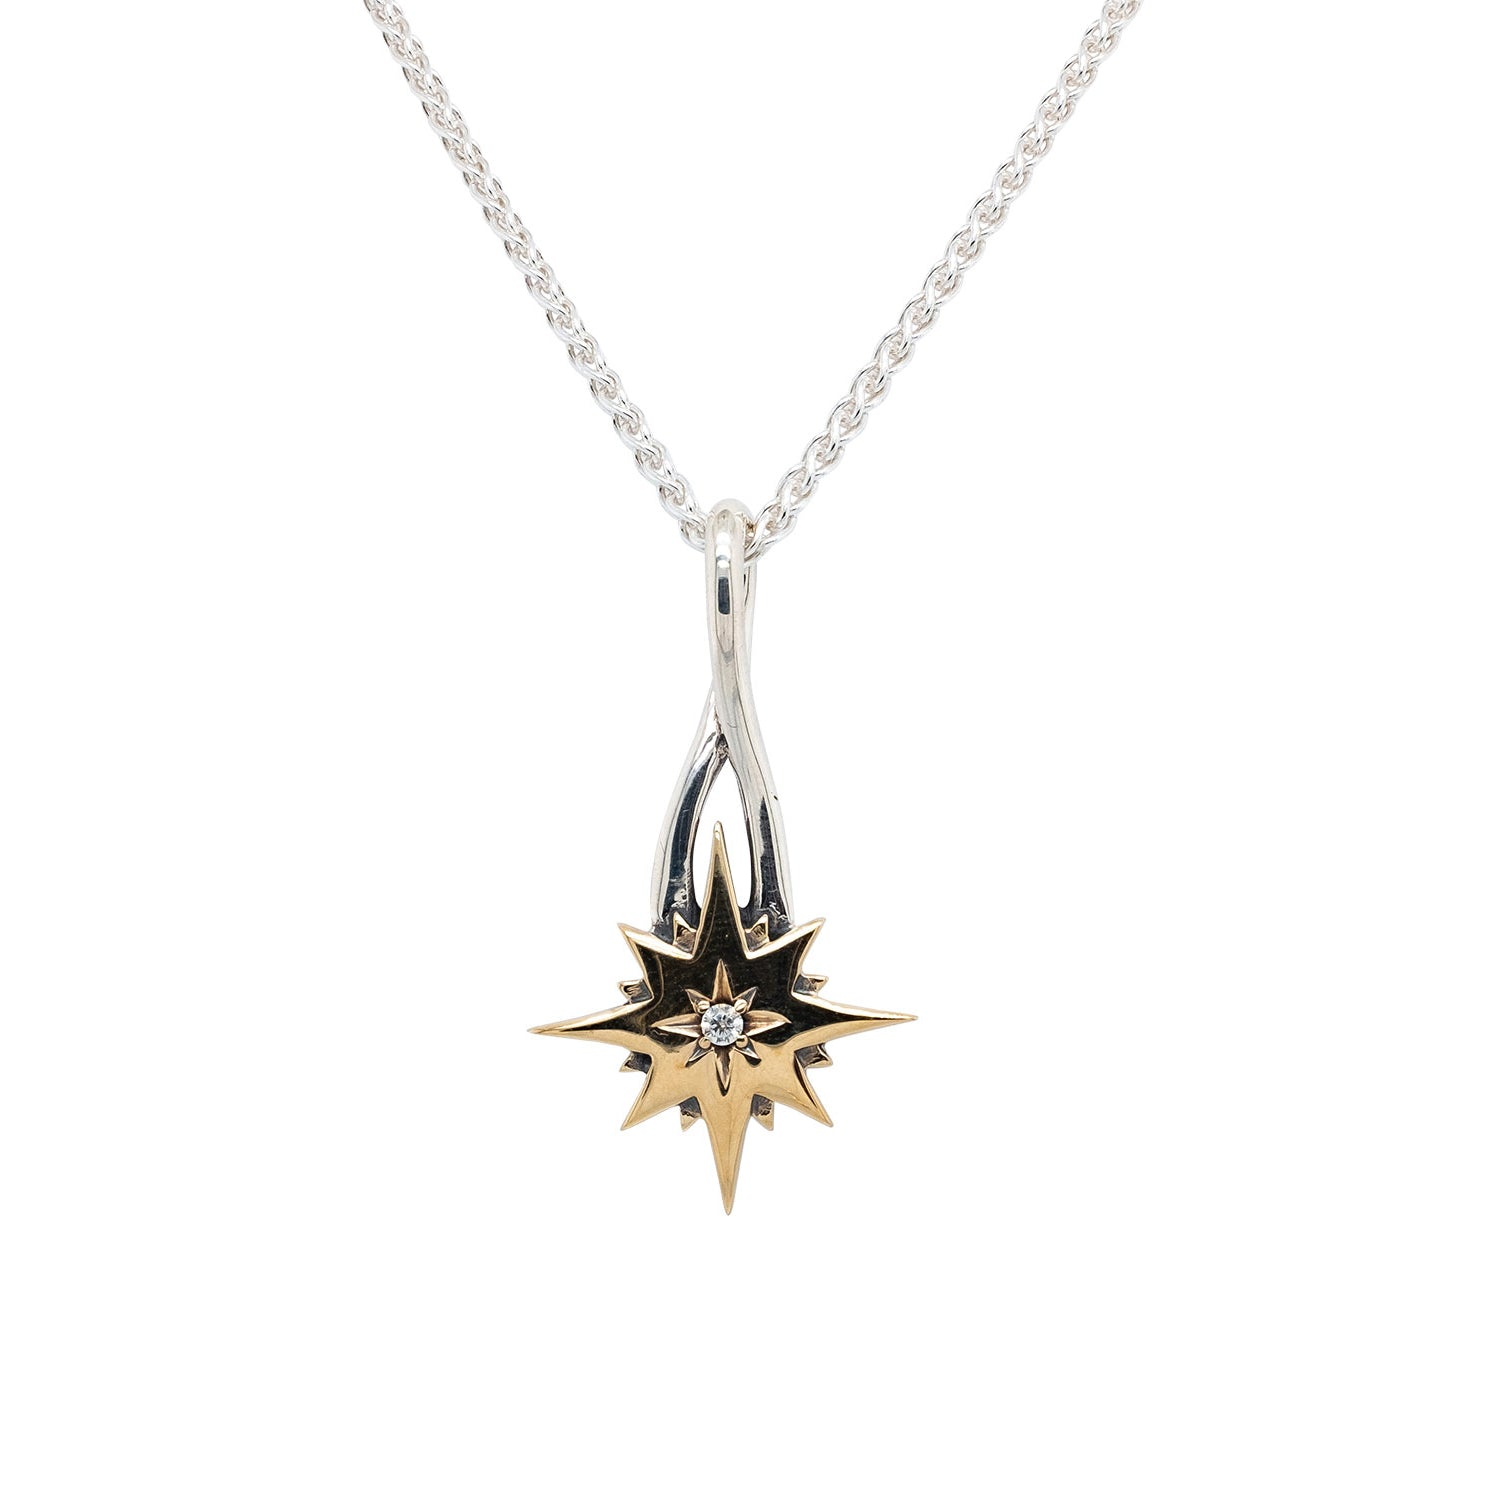 Pendant 10k Compass with White Sapphire (1.3mm) Star Pendant Large from welch and company jewelers near syracuse ny